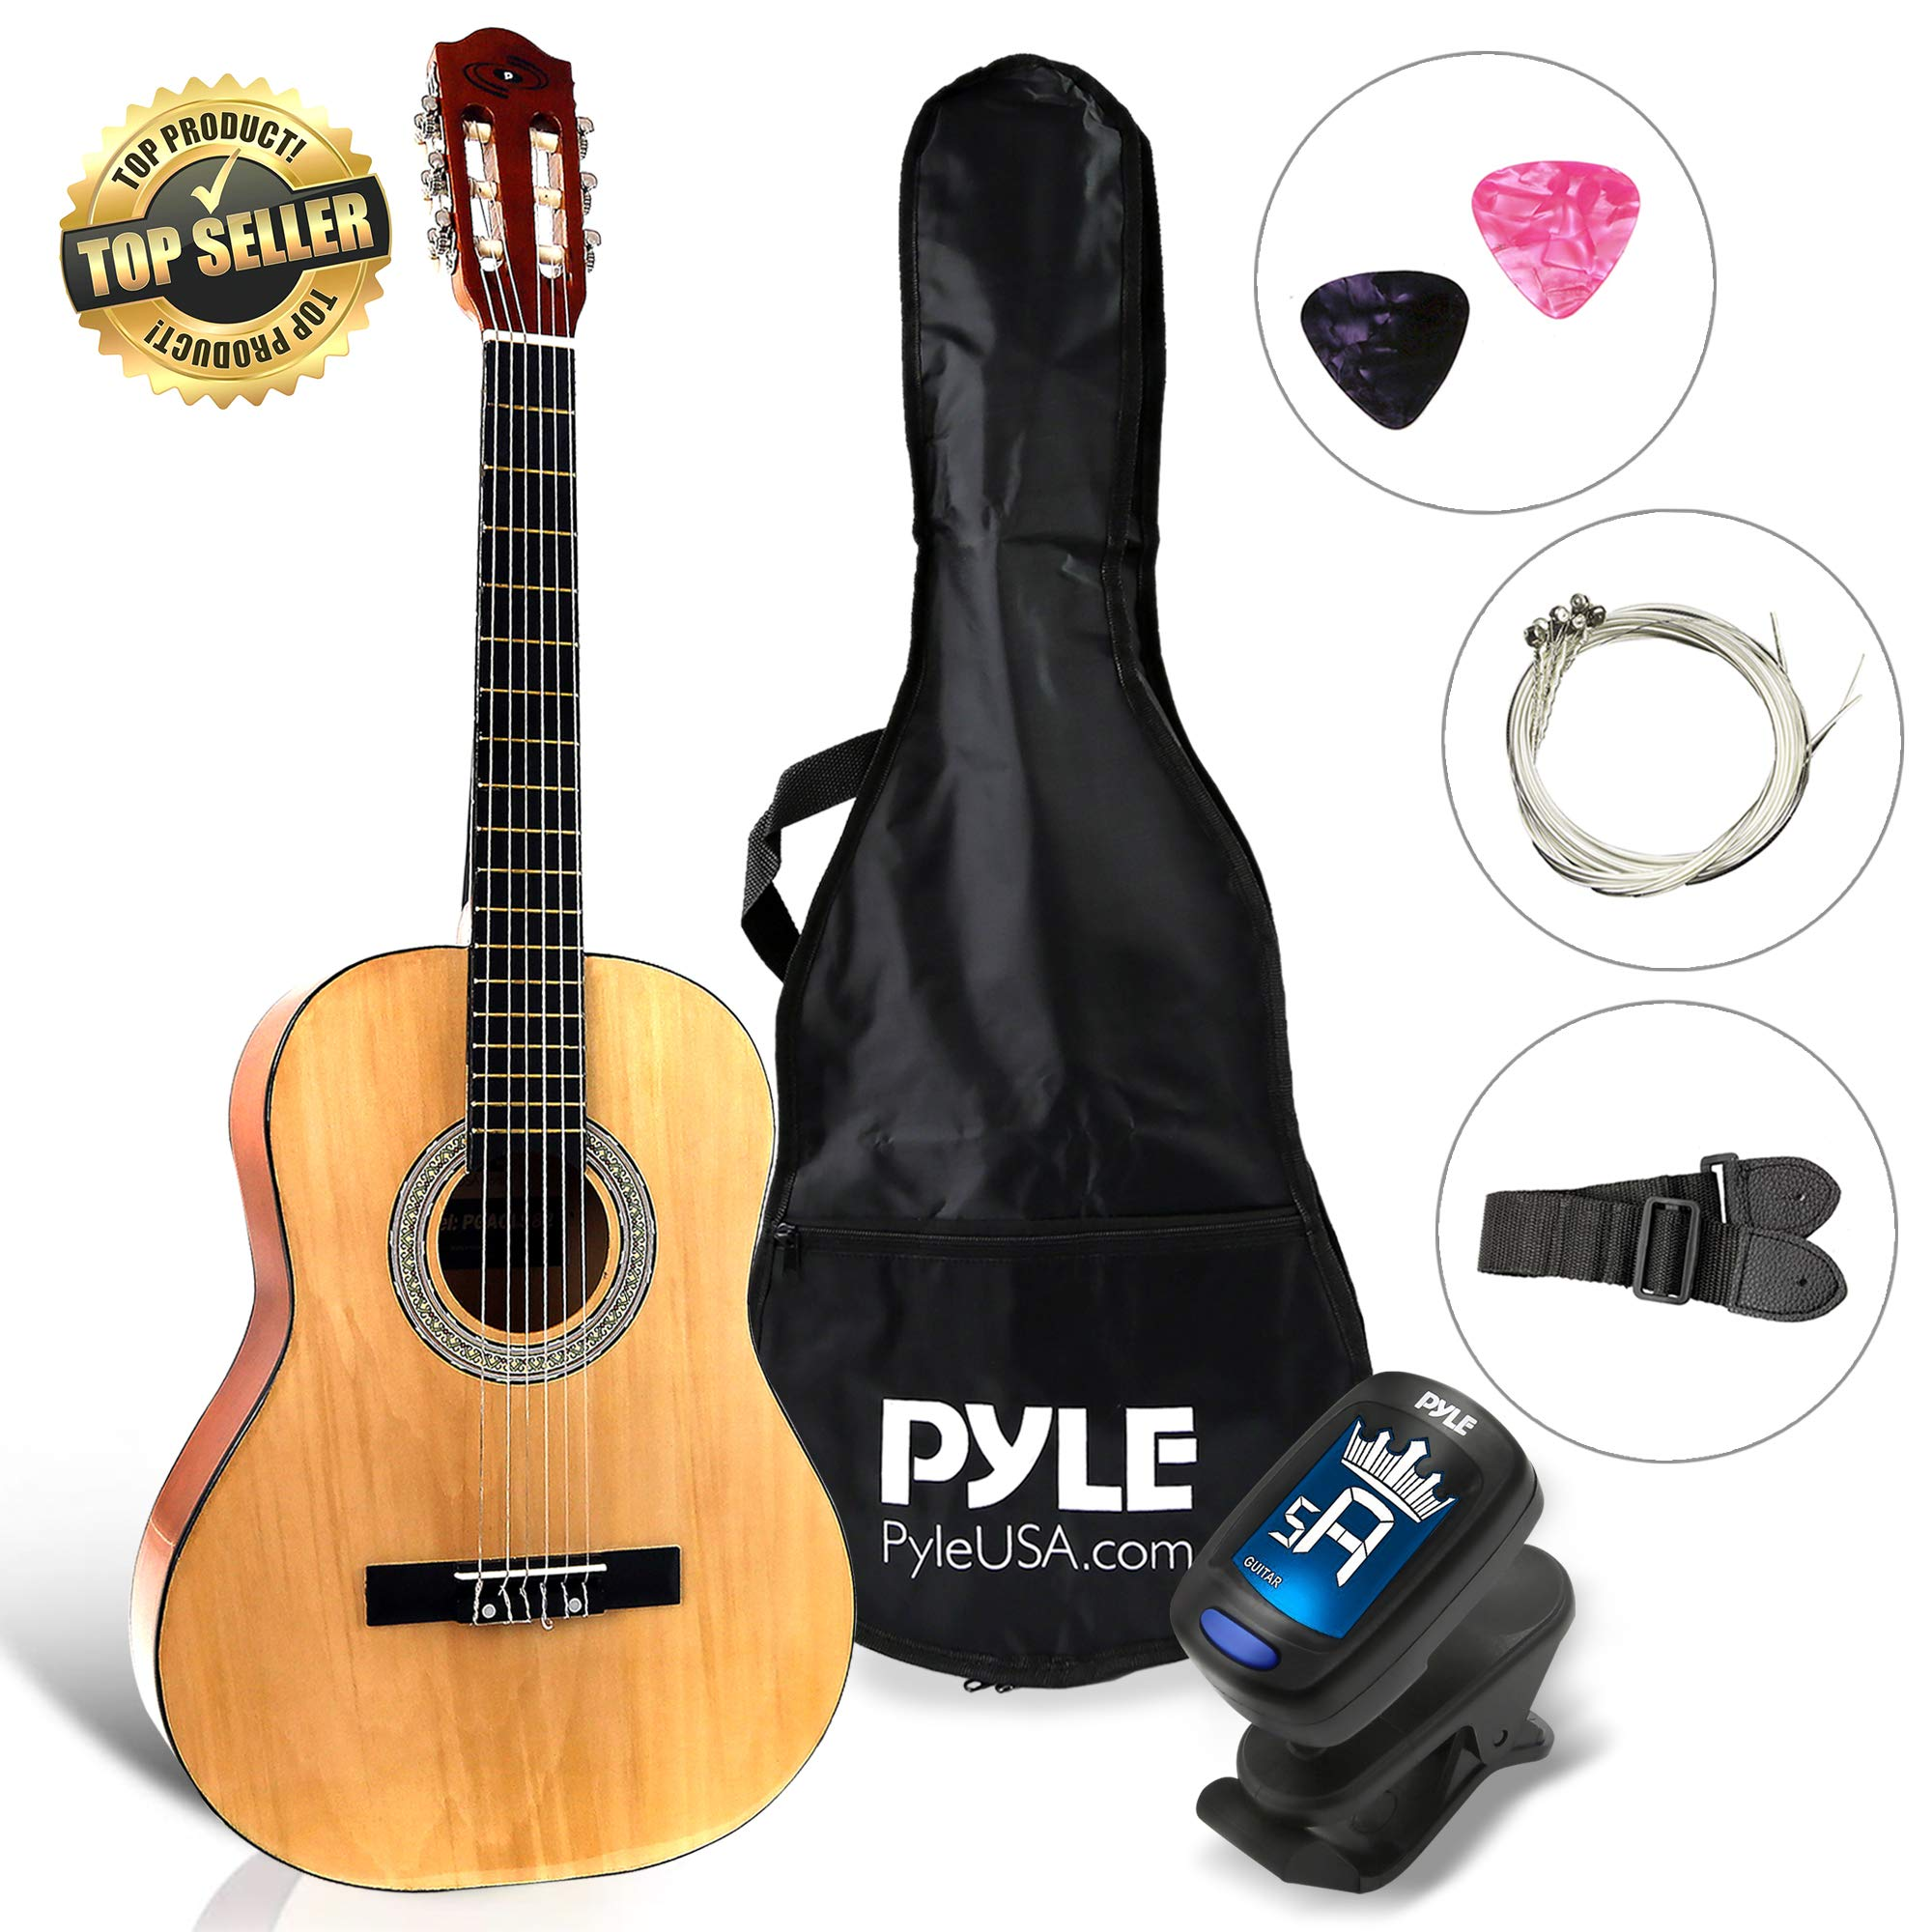 Beginner 36'' Classical Acoustic Guitar - 6 String Junior Linden Wood Traditional Guitar w/Wooden Fretboard, Case Bag, Tuner, Nylon Strings, Picks, Cloth, Great for Beginners, Children - Pyle PGACLS82 by Pyle